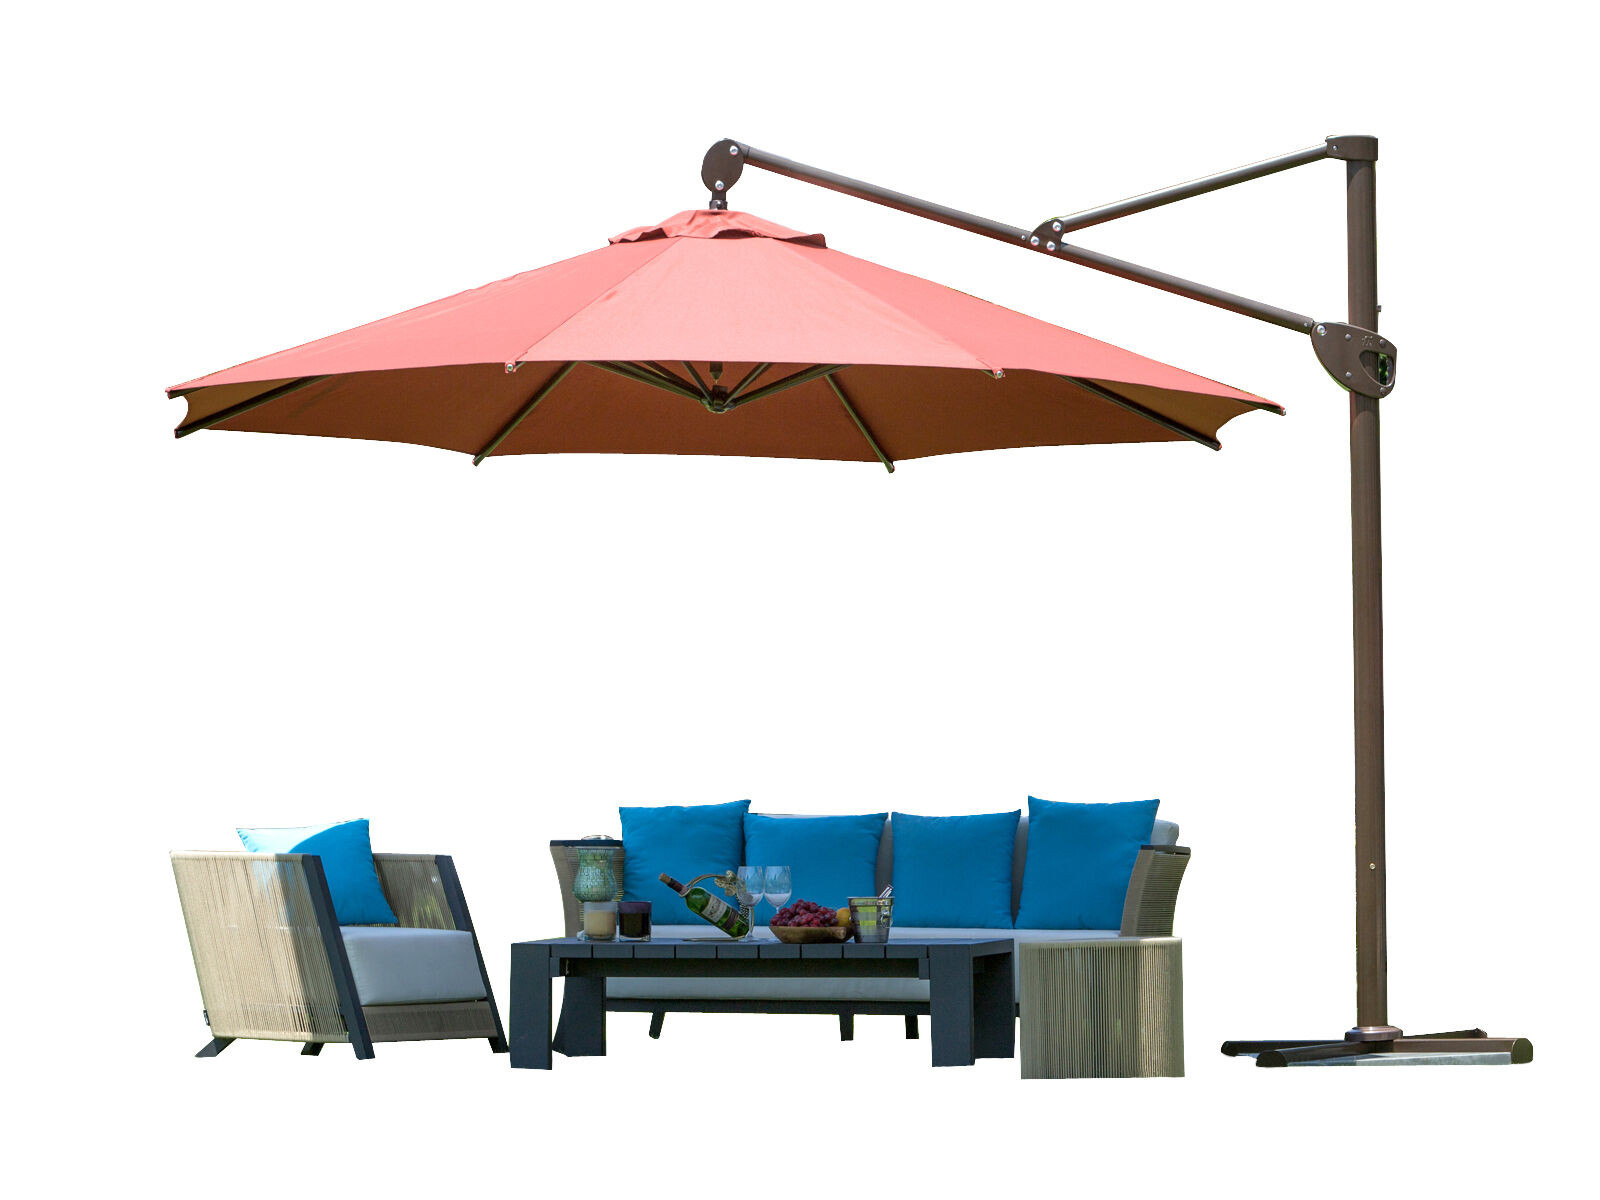 Best ideas about Cantilever Patio Umbrella . Save or Pin 11' fset Cantilever Patio Umbrella Tilt Hanging Canopy Now.